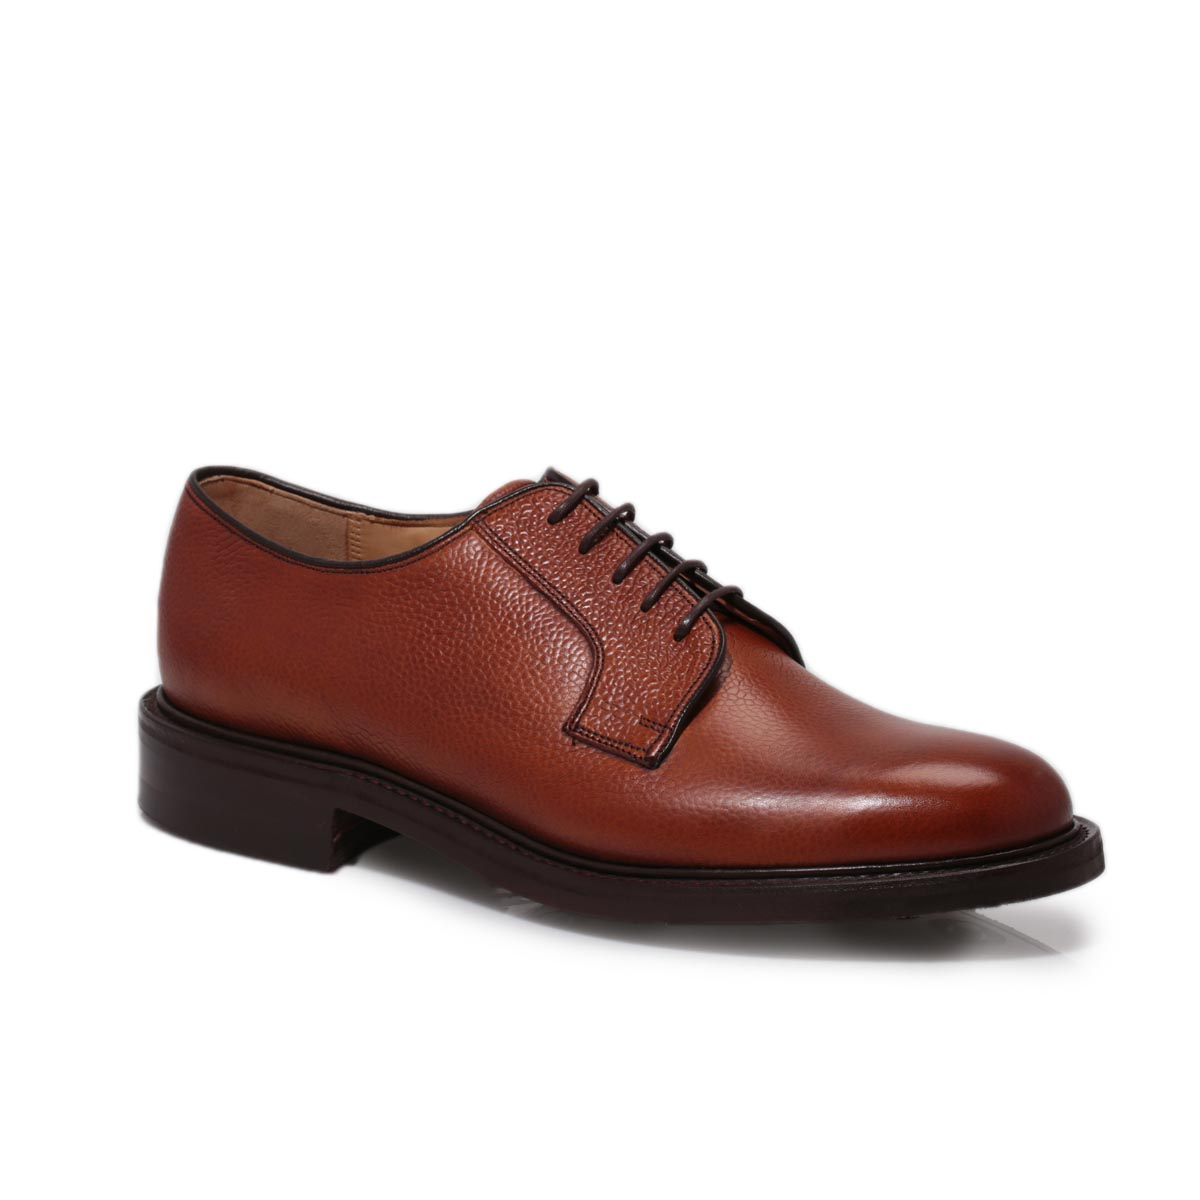 Buy Smart shoes from the Mens department at Debenhams. You'll find the widest range of Smart shoes products online and delivered to your door. Shop today! Menu Brown leather 'Oke' Derby shoes Save. Was £ Now £ Jeff Banks Black leather 'Oke' Derby shoes.